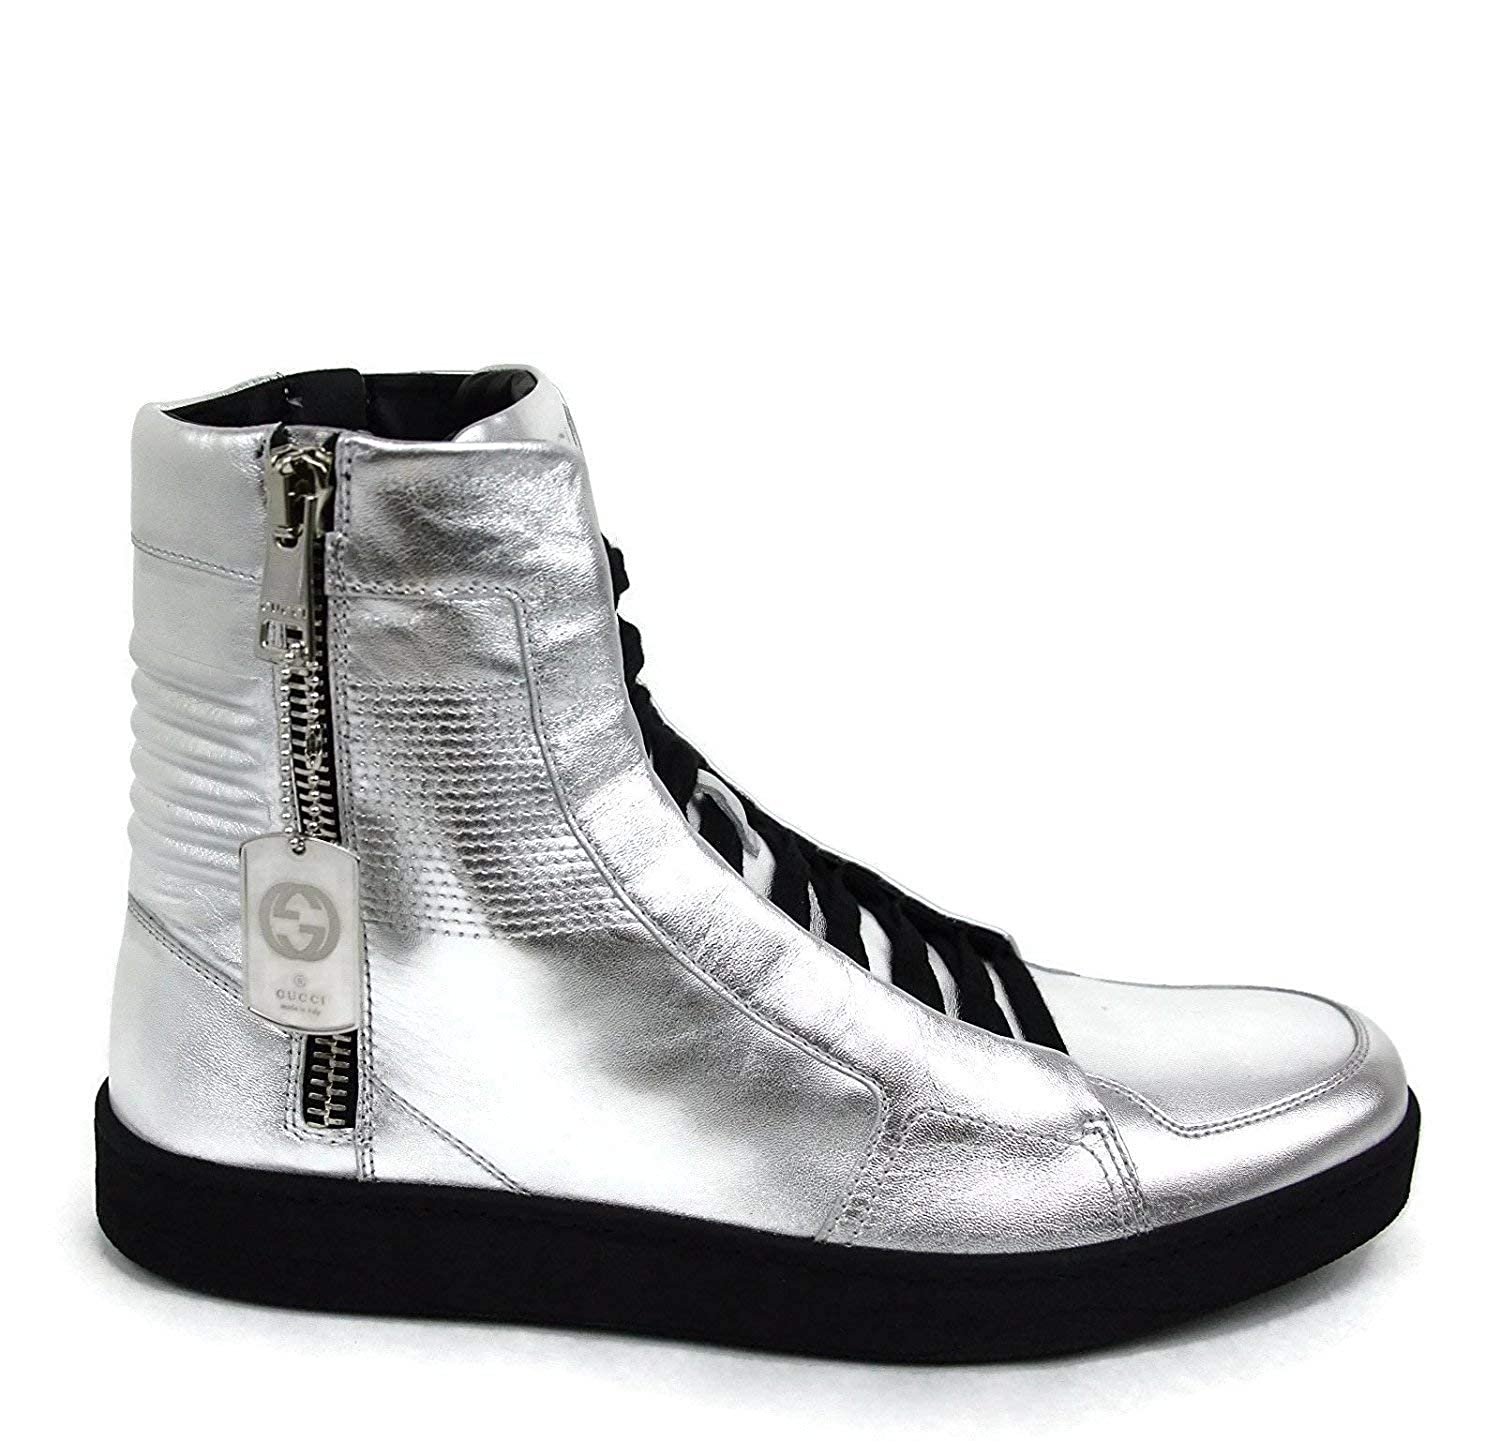 14d164d4662 Amazon.com  Gucci Men s Silver Leather Limited Edition High-top Sneakers  376191 8163  Shoes